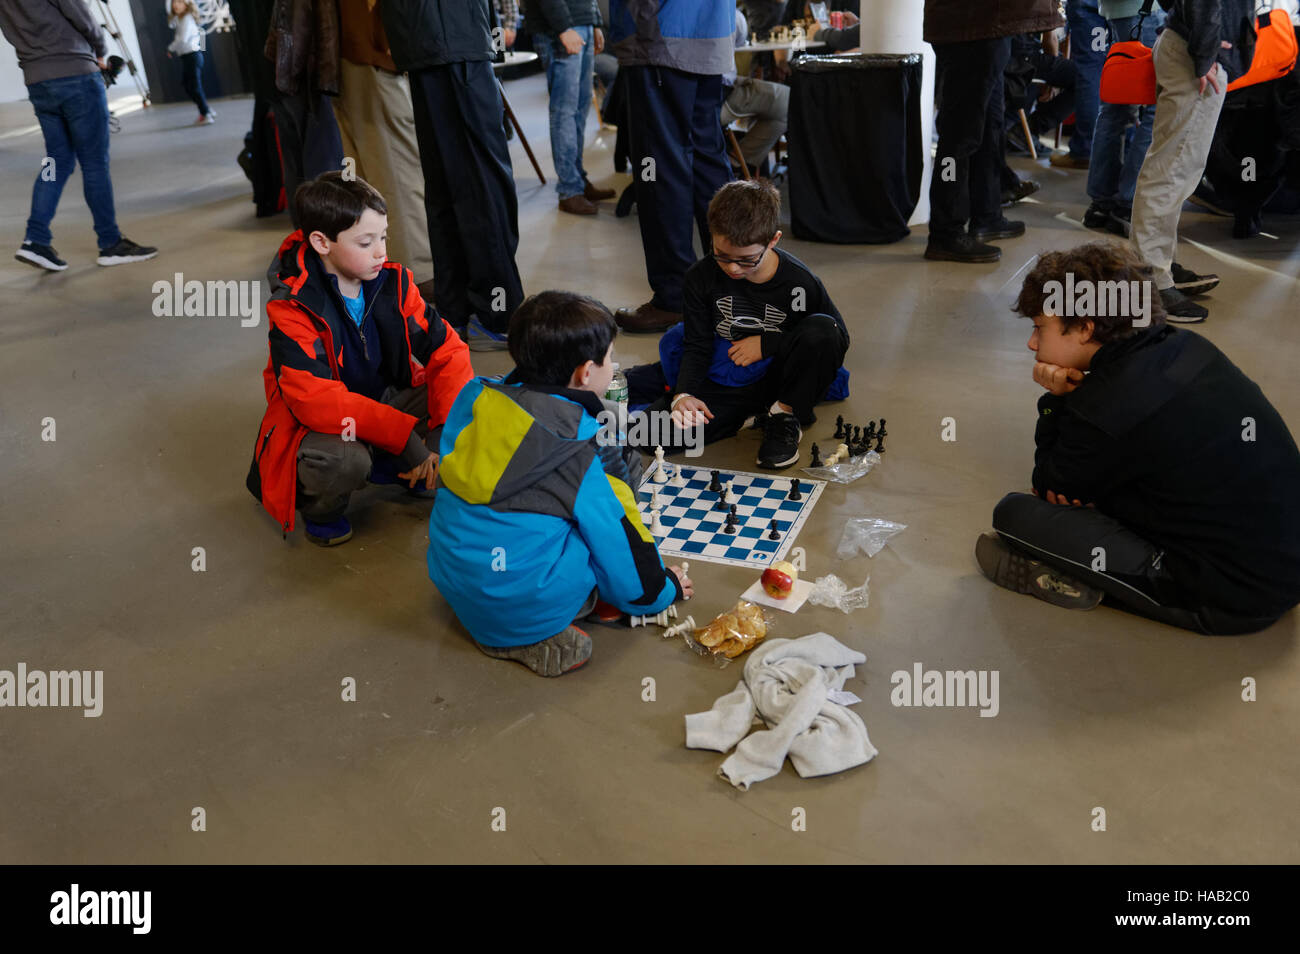 At the World Chess Championship, held in the South Street Seaport, some boys sat on the floor playing chess. Nov. - Stock Image